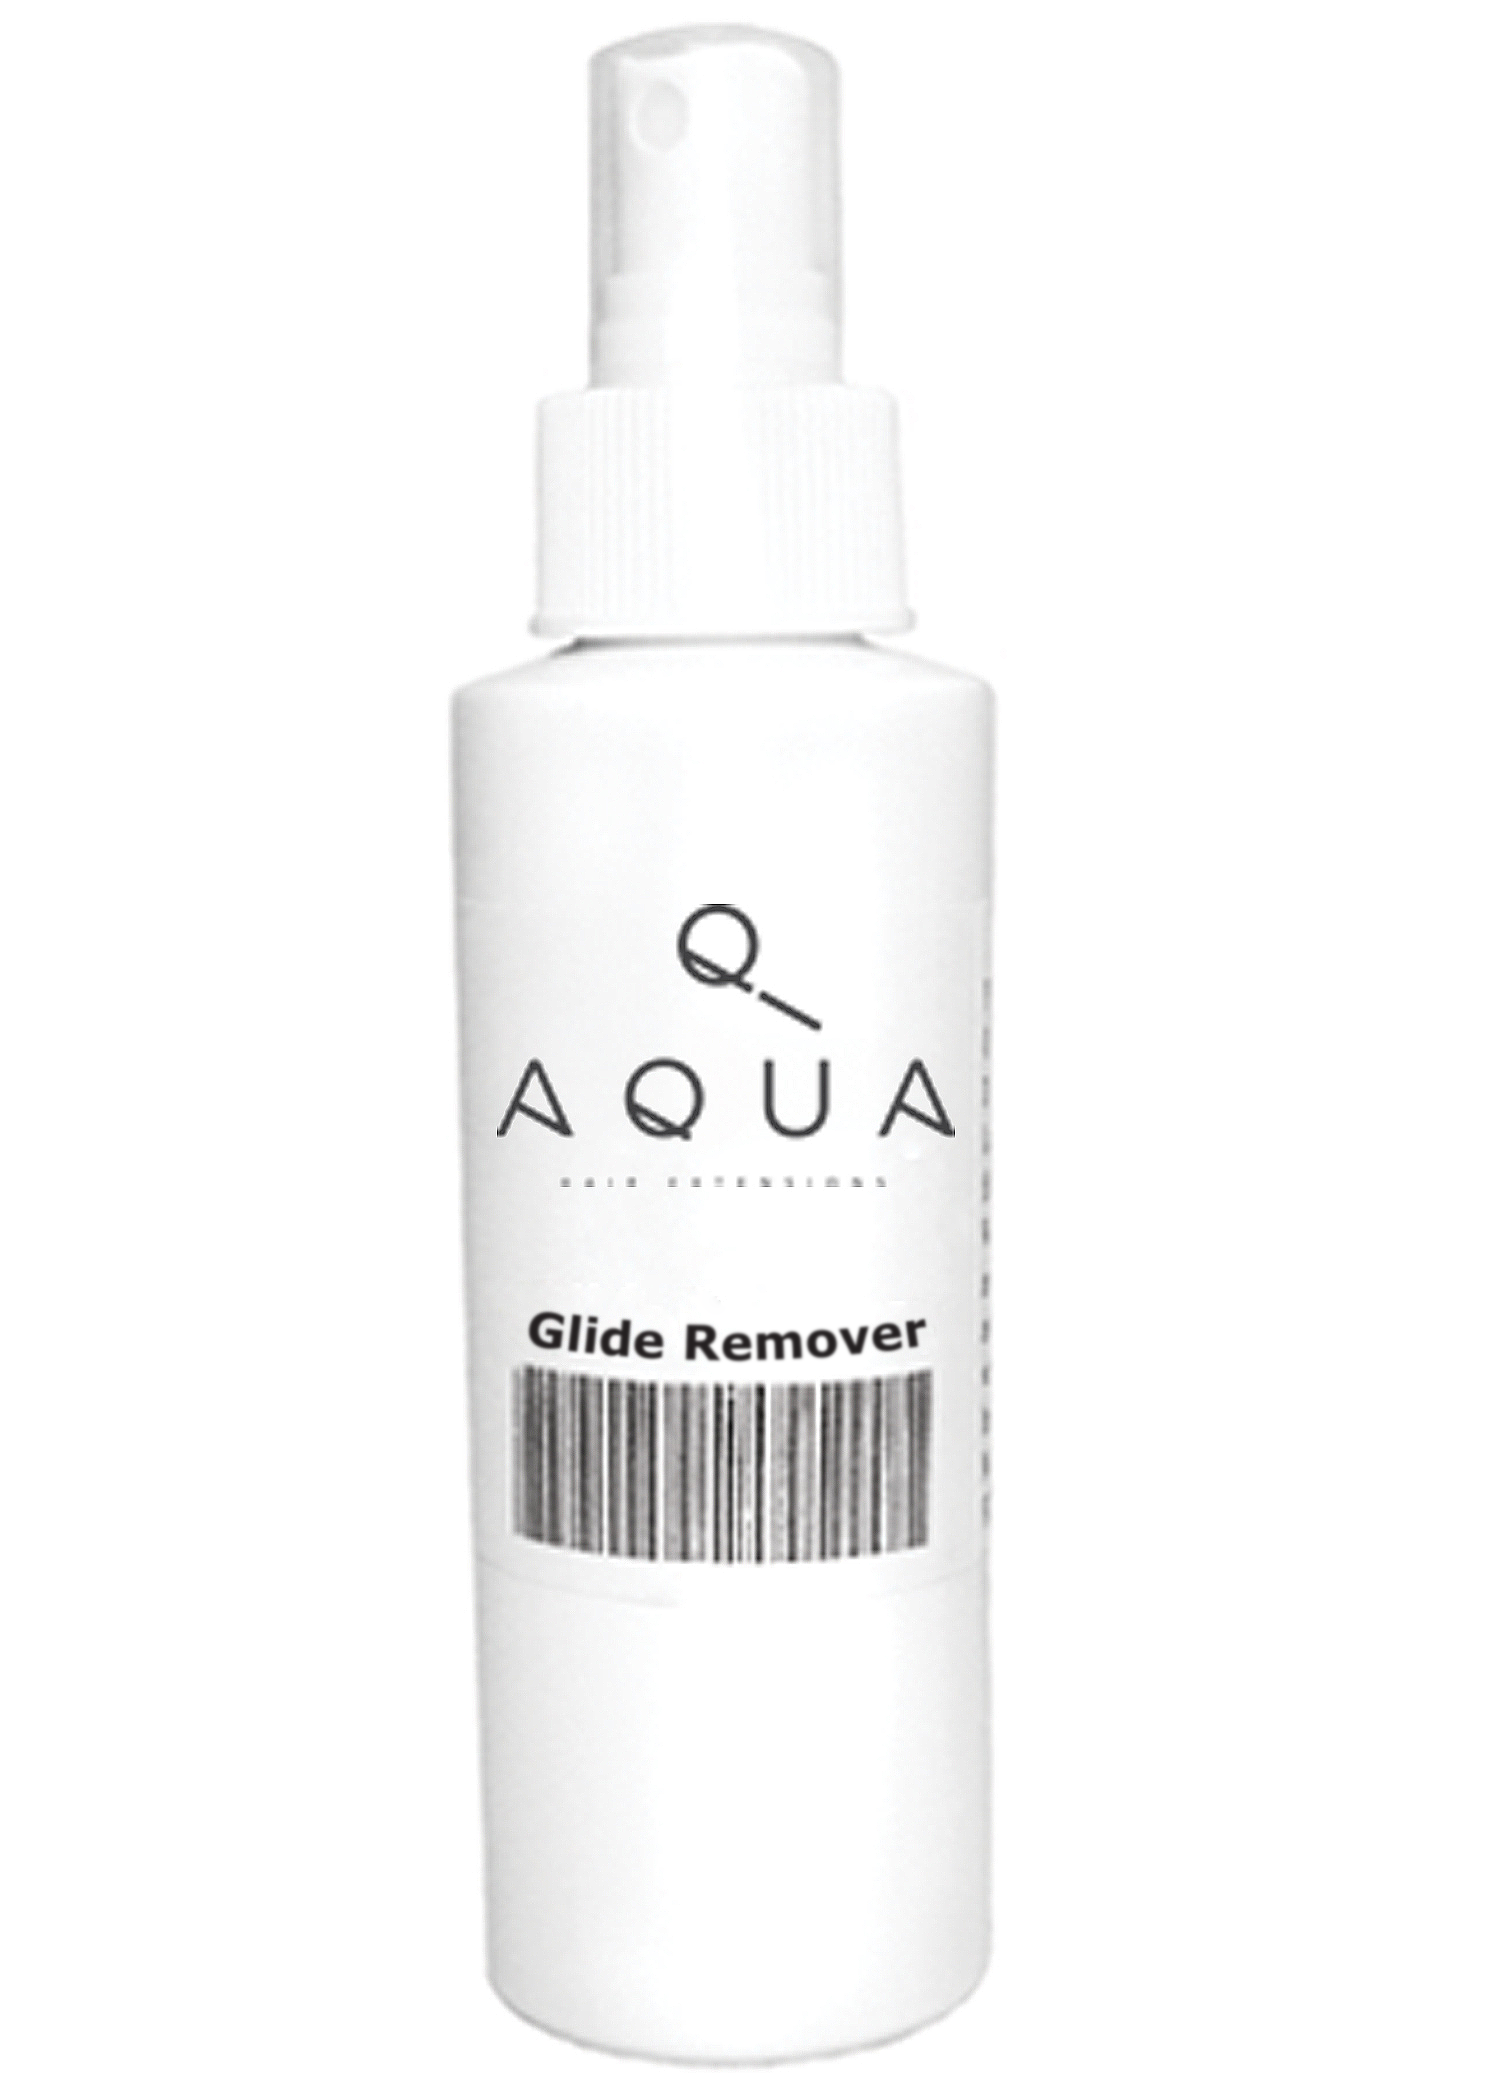 Oil Based Remover to remove the tape hair extensions from the client's hair. Also can be used to remove tpae residue. After applying on the client's hair use fine tooth comb to remove residue